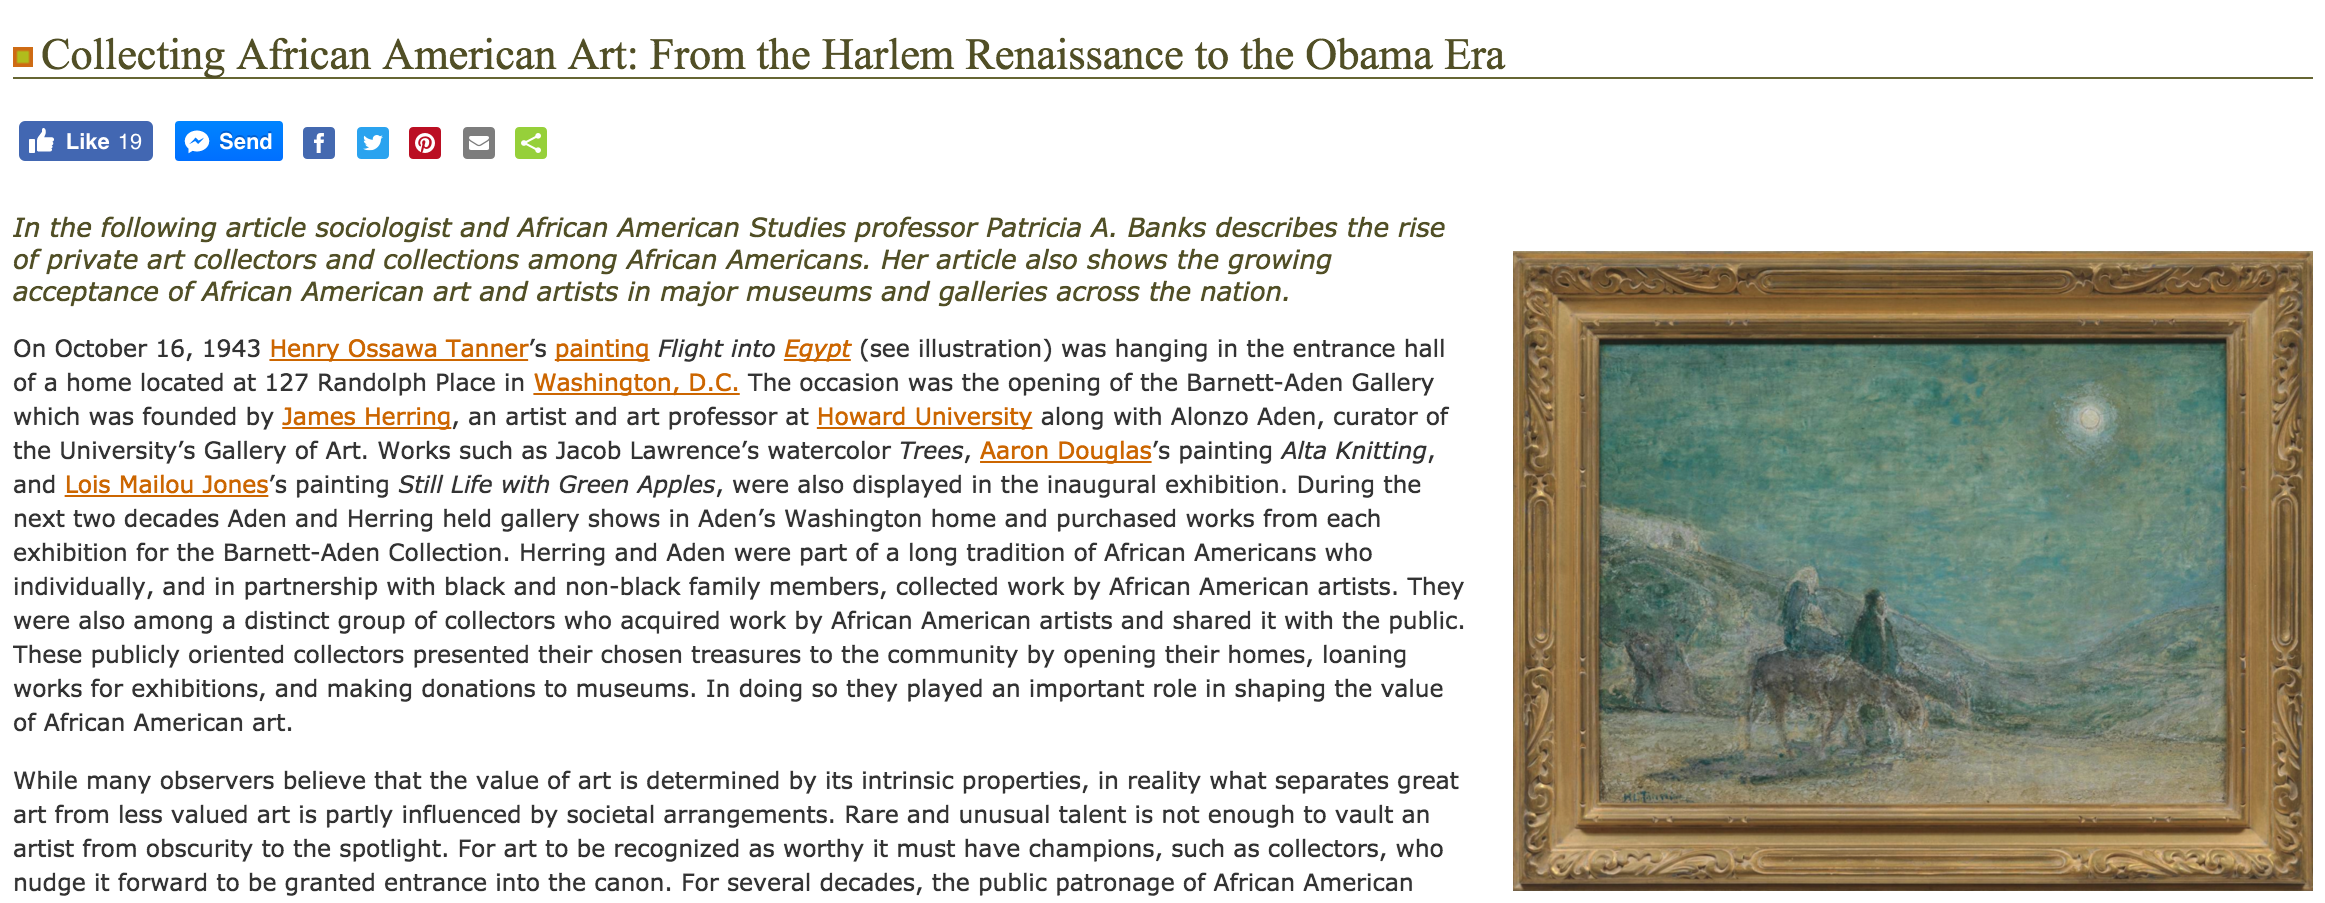 Collecting African American Art- From the Harlem Renaissance to the Obama Era-2.png